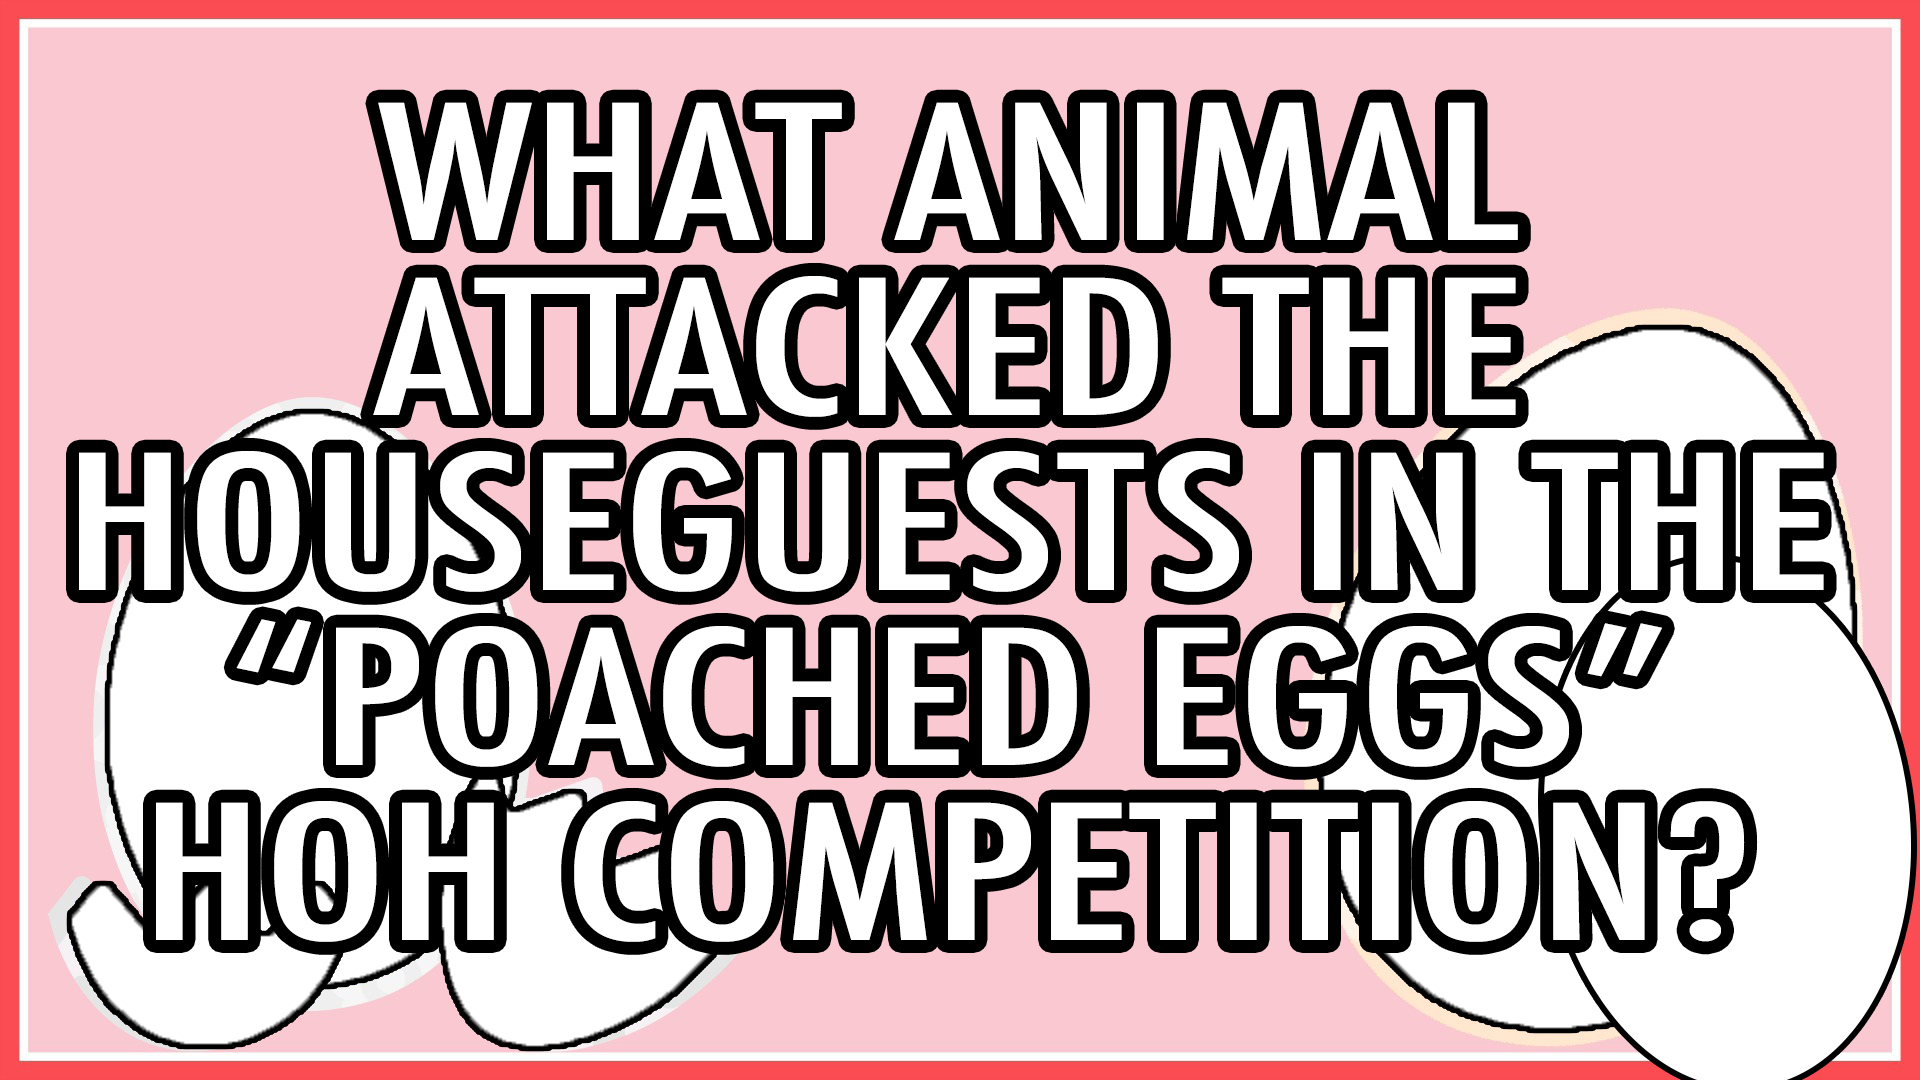 What animal attacked the Houseguests during the